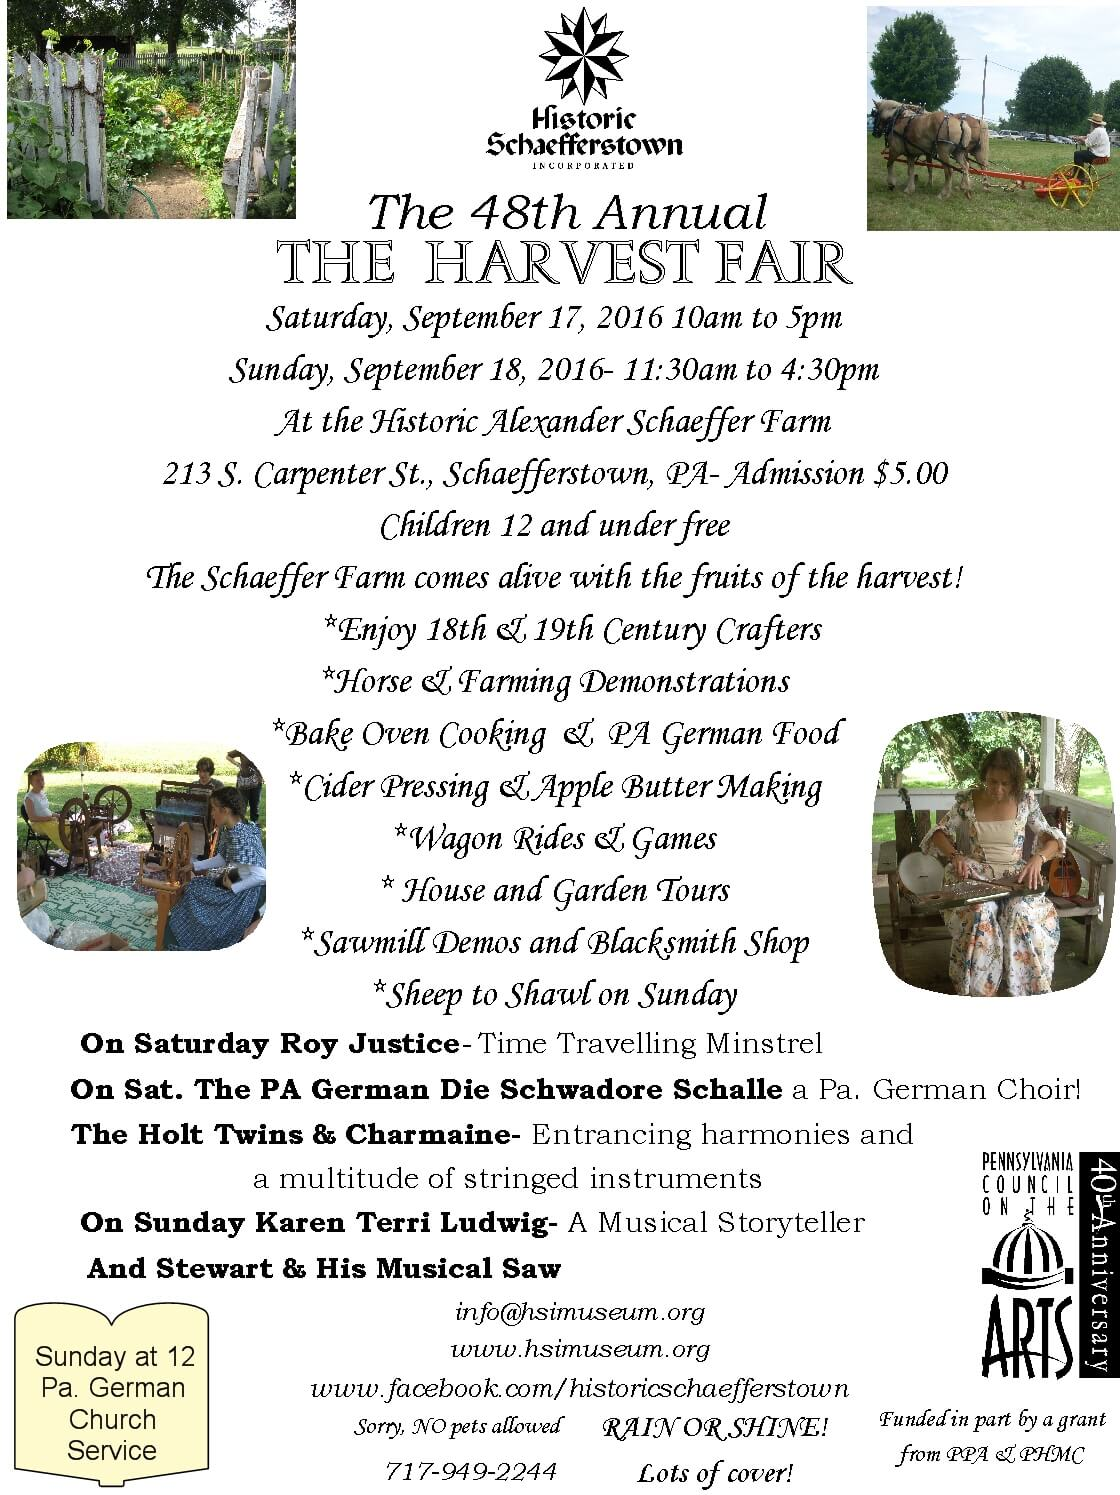 2016 Harvest Fair Flyer outlines our weekend full of events